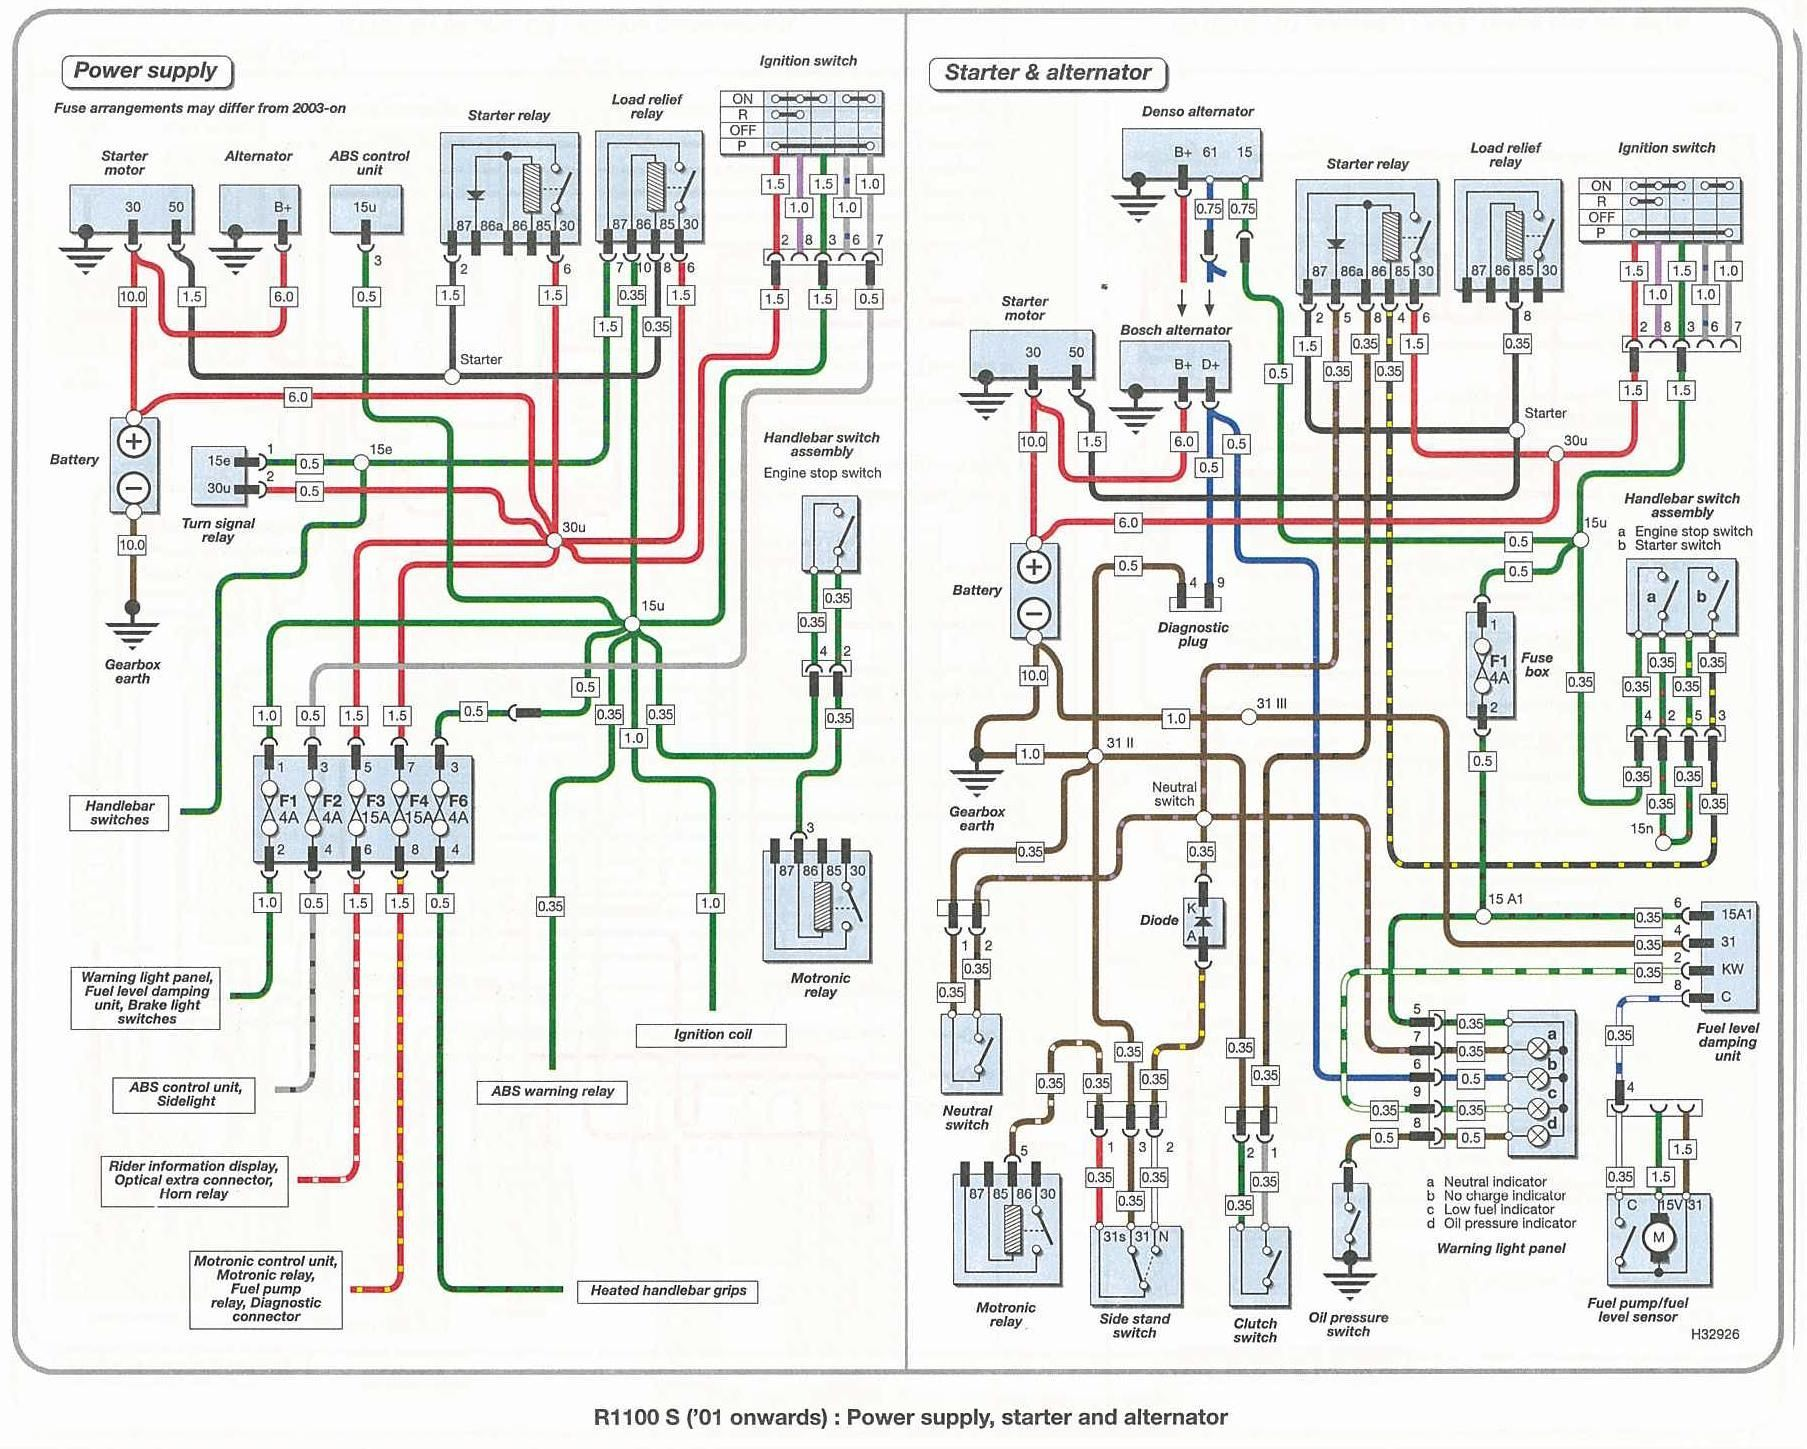 Bmw R1150r Electrical Wiring Diagram Electrical Wiring Diagram Bmw Electrical Diagram